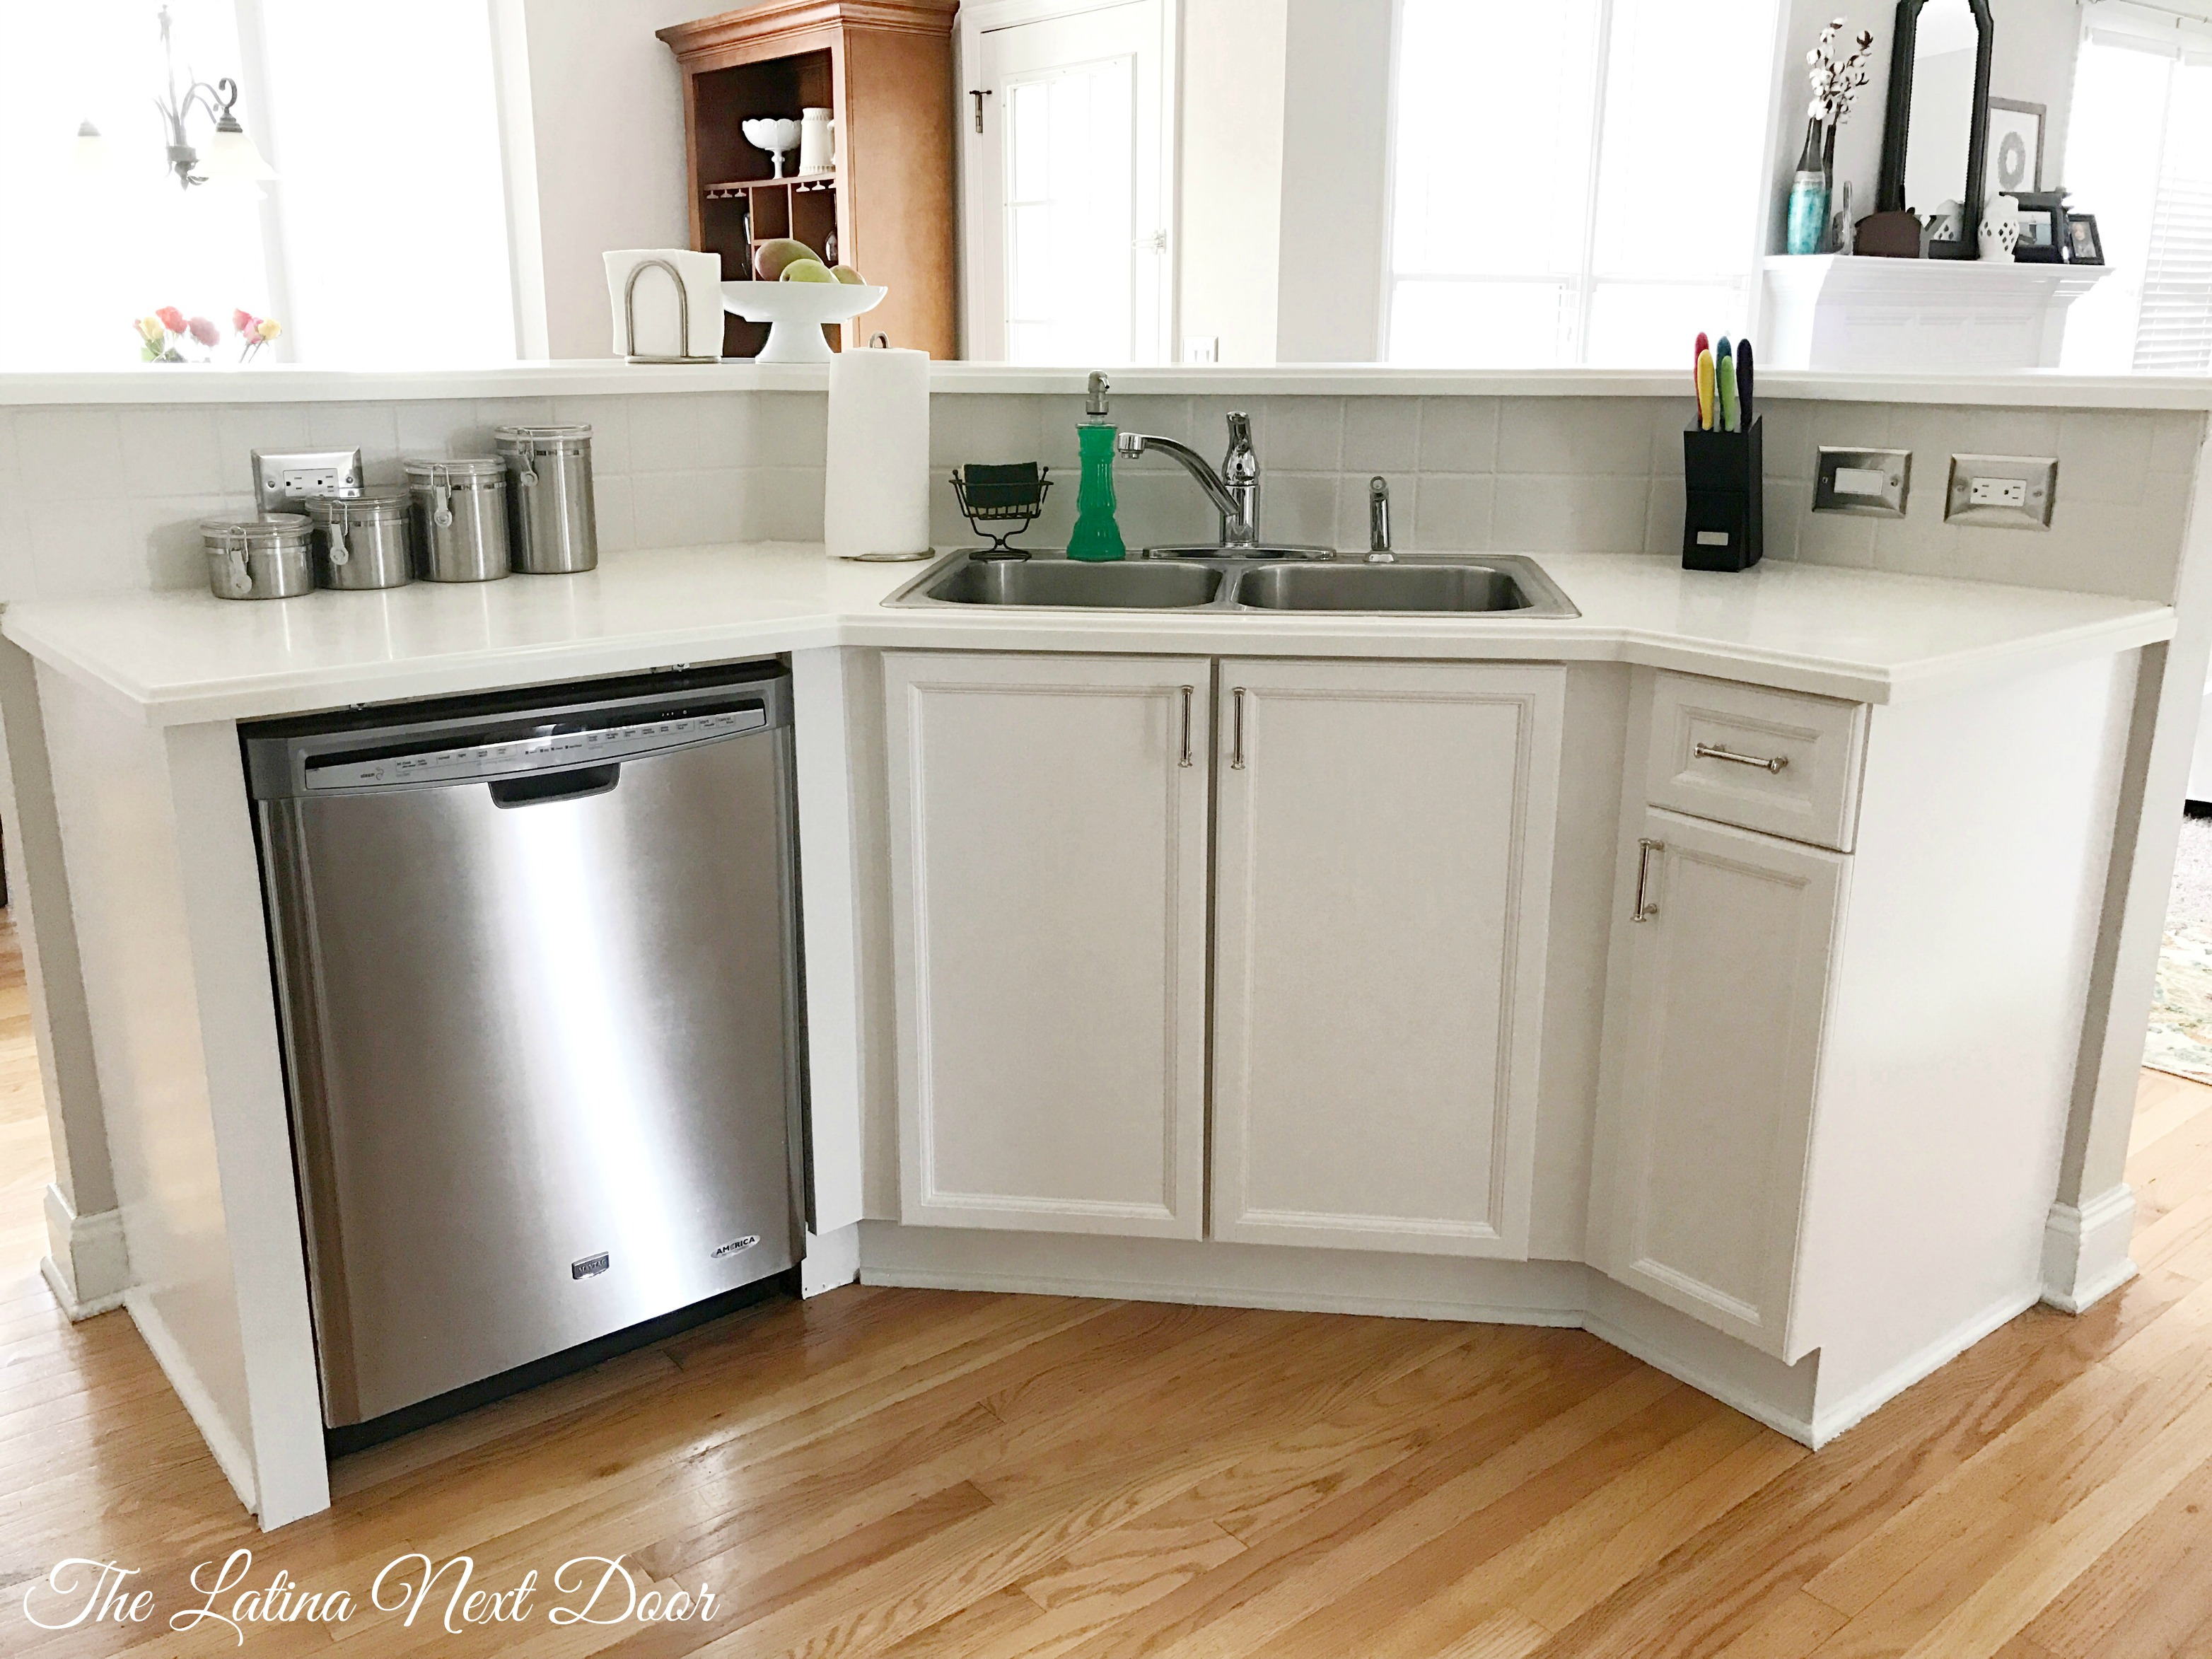 How To Paint Kitchen Cabinets - The Latina Next Door